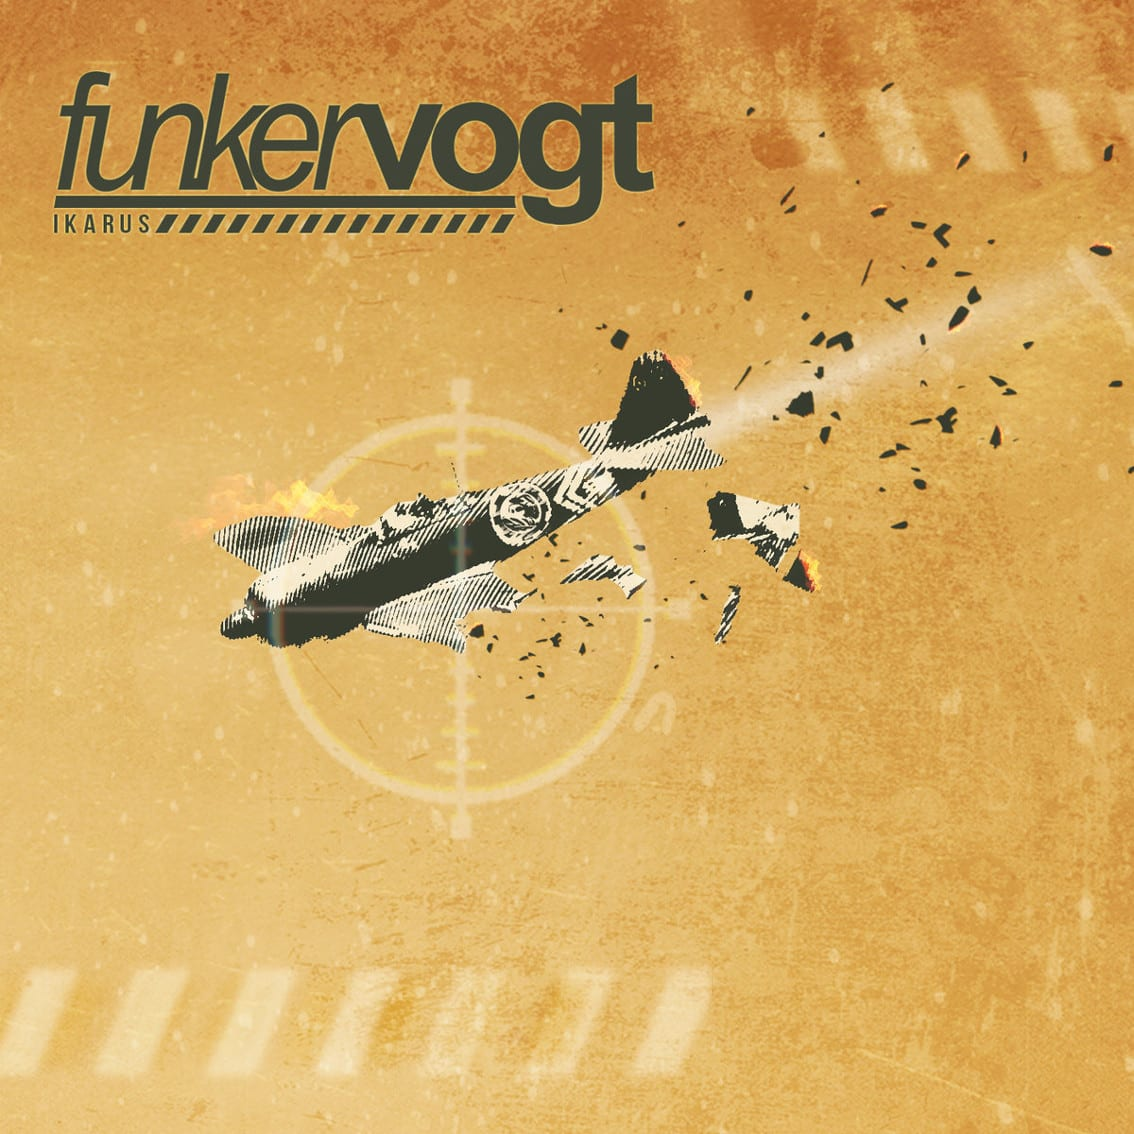 Funker Vogt launch 'Ikarus' video to announce new EP - watch it on Side-Line